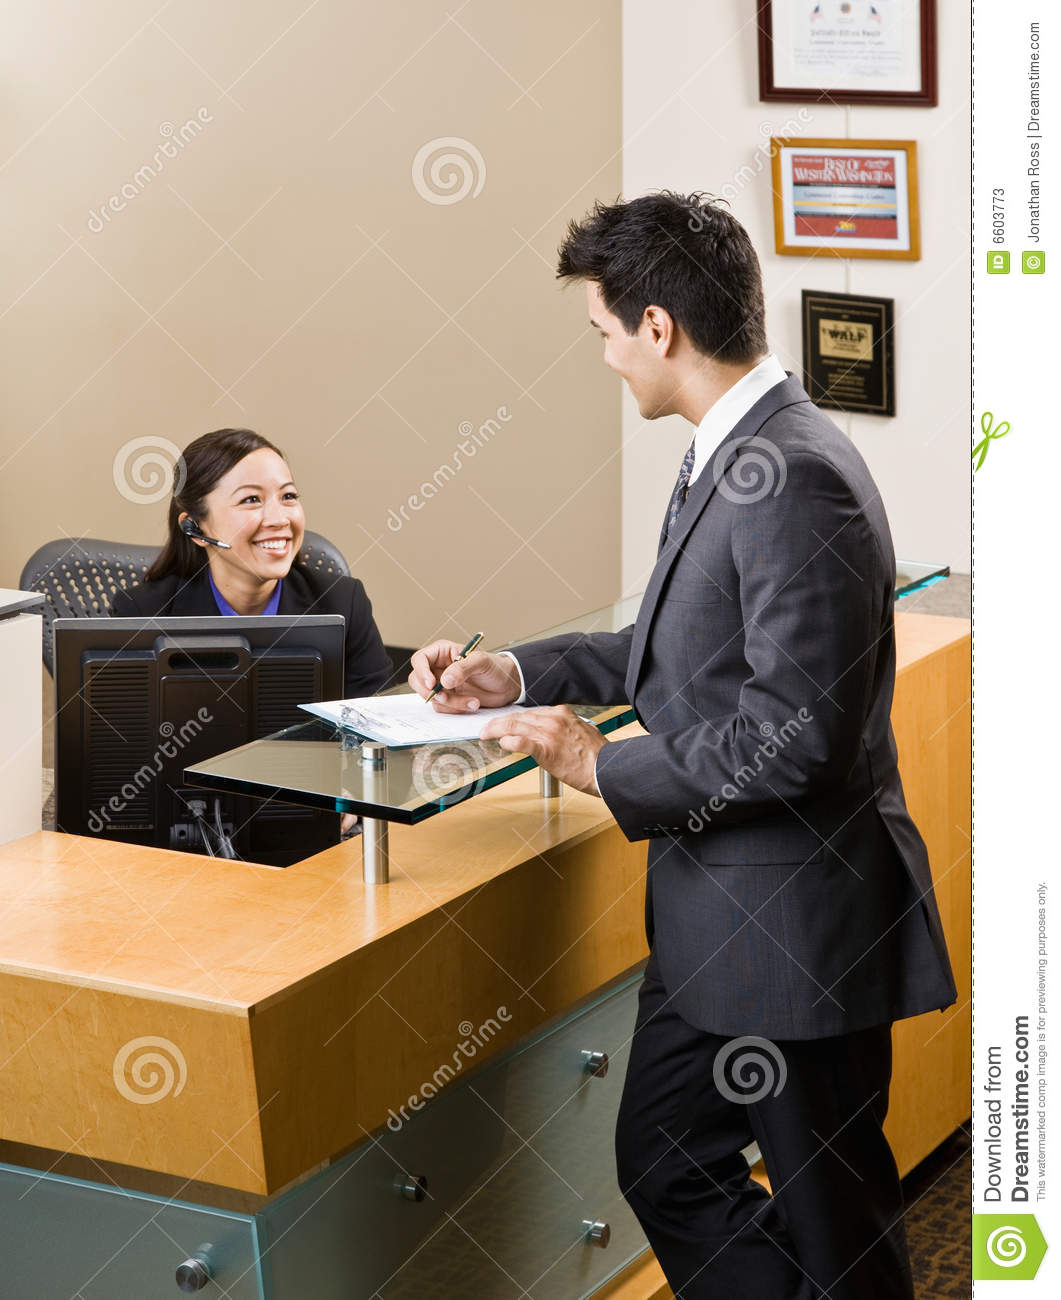 Receptionist greeting man at front desk